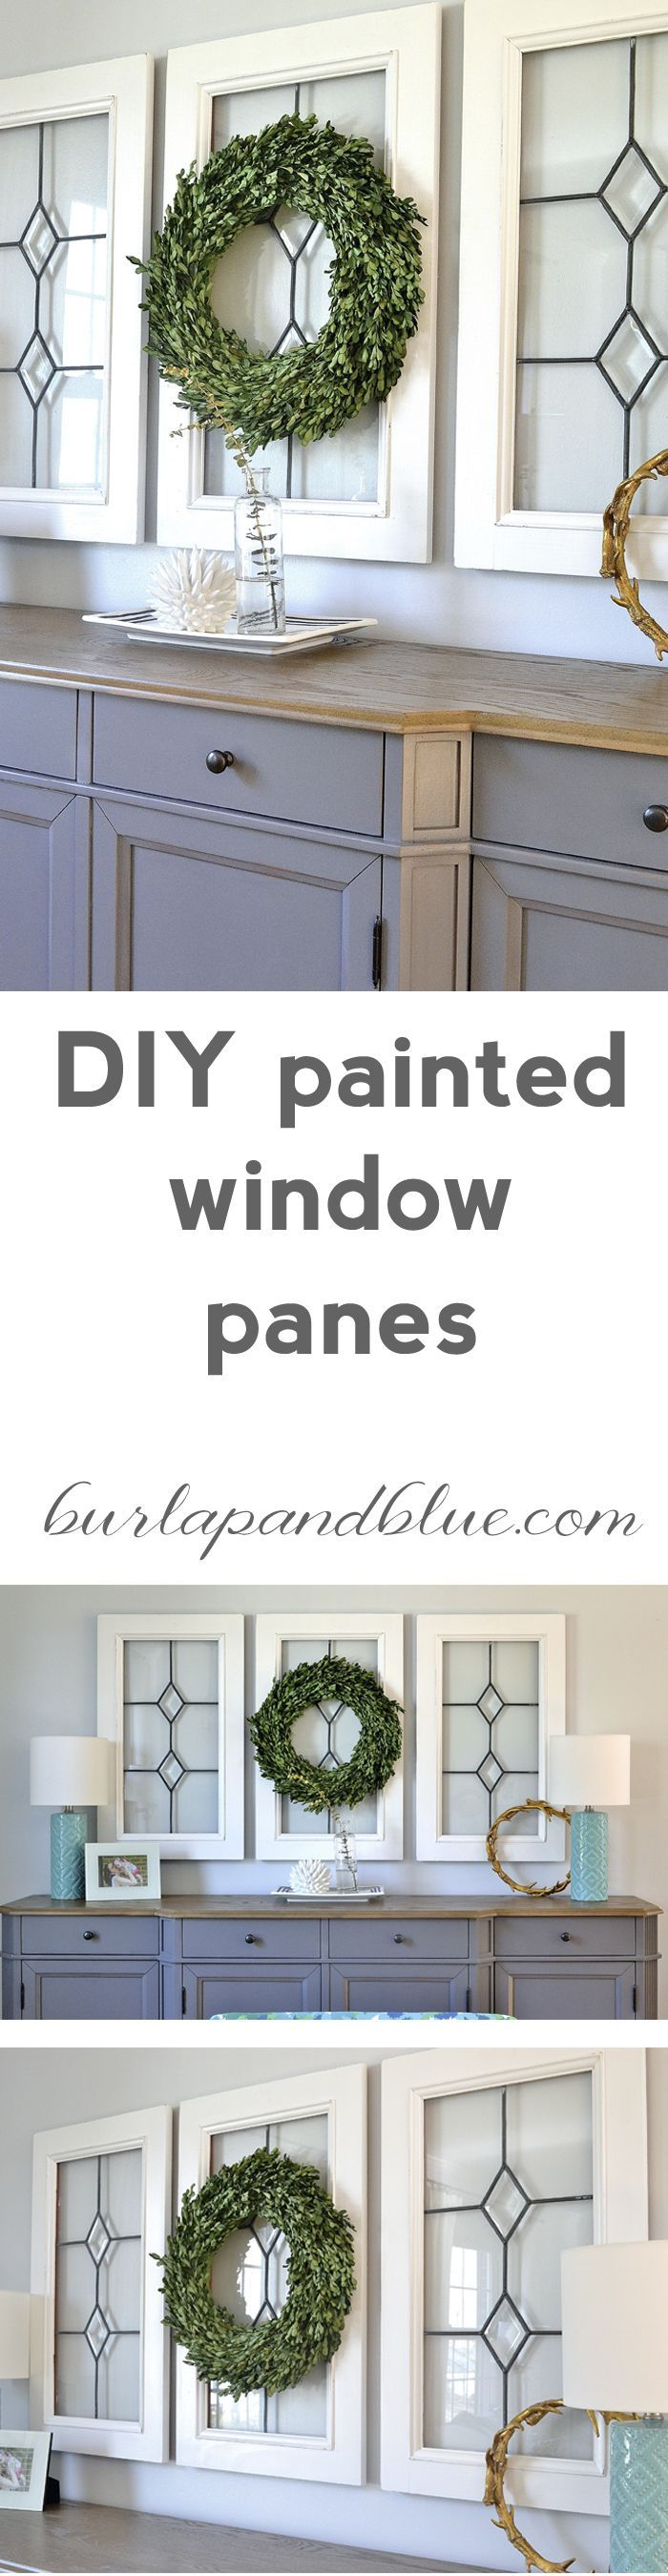 Window frame decor with wreath  window pane decor how to use old window frames  for the home